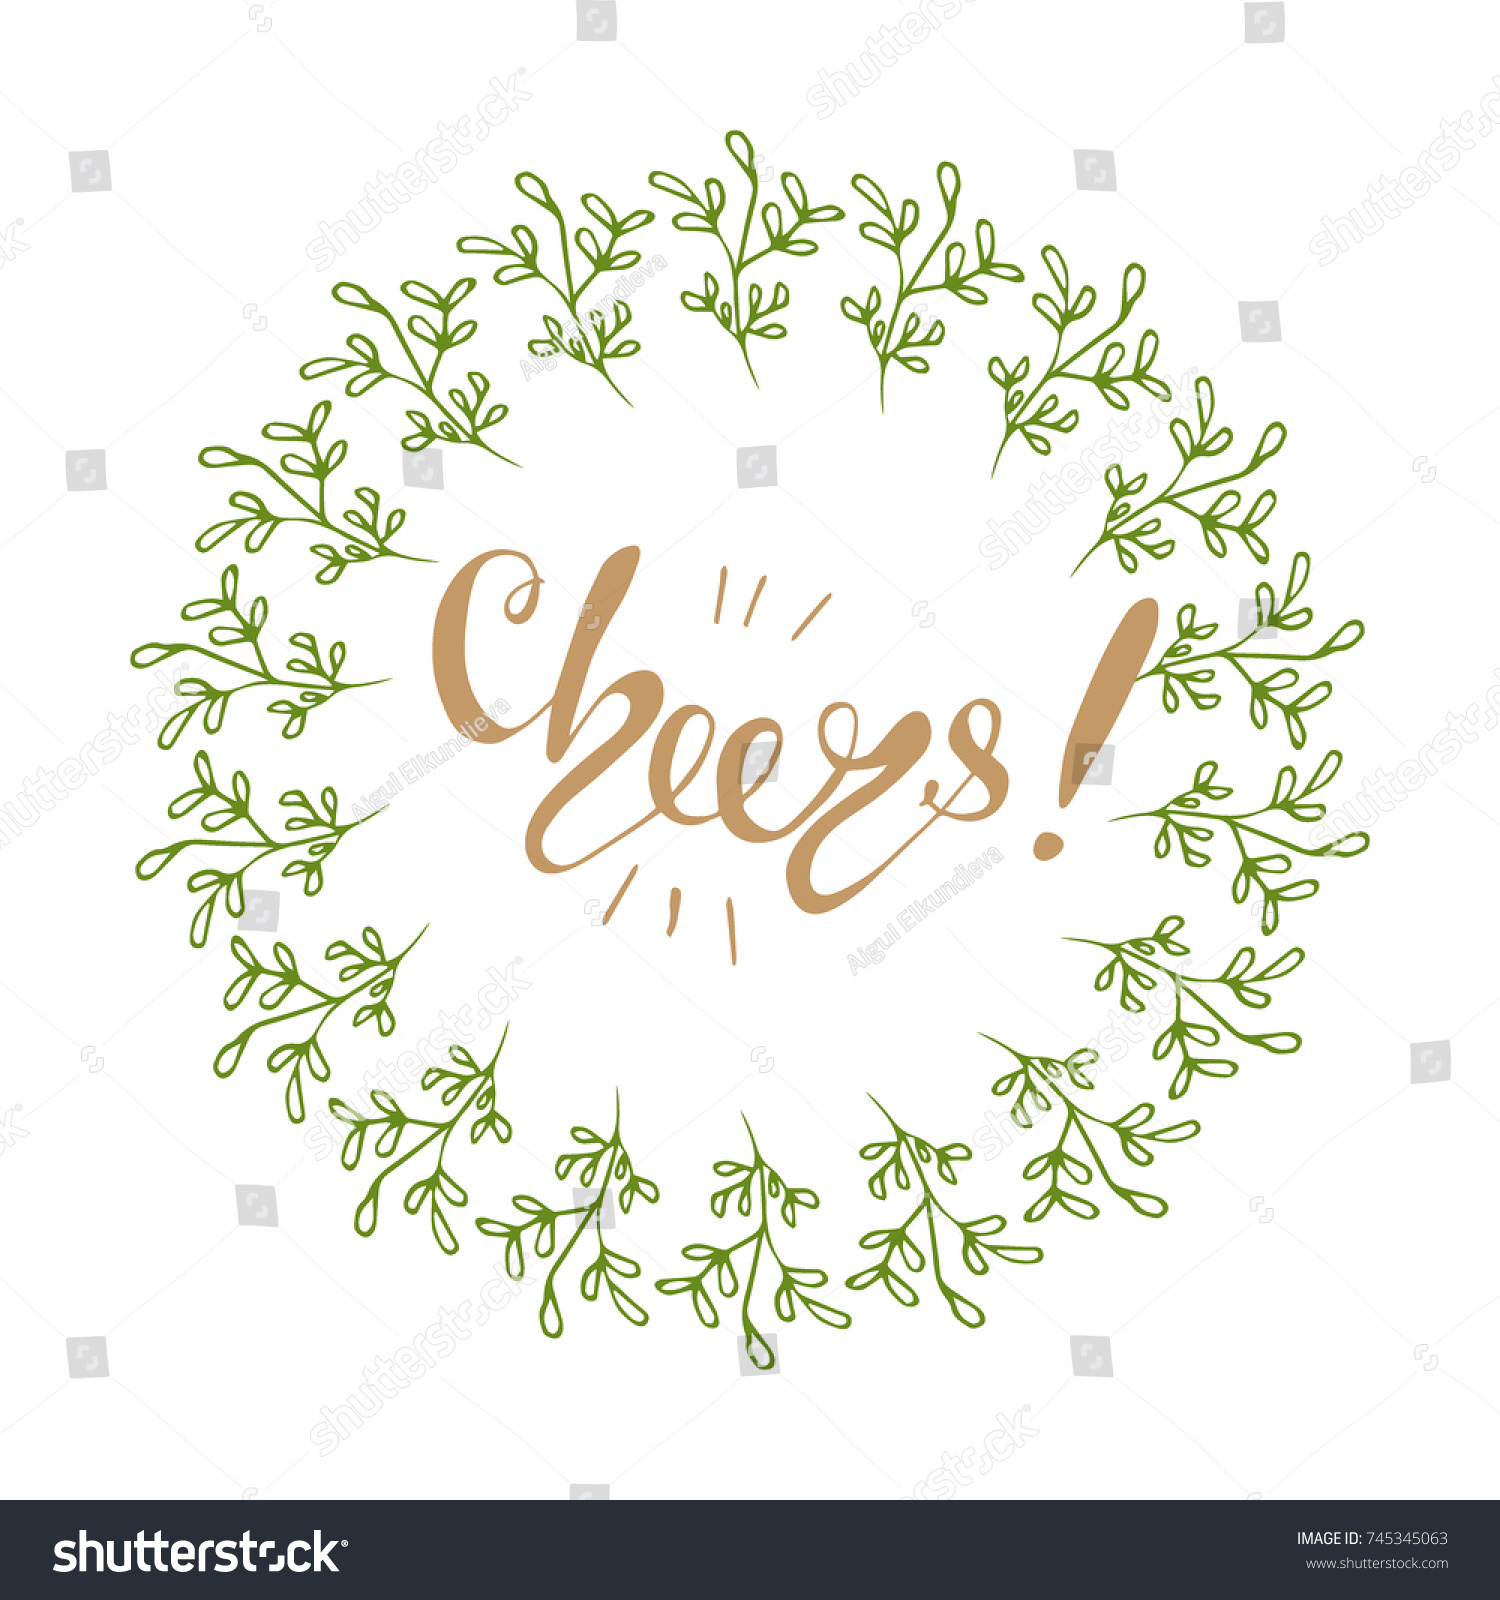 Vector Christmas Greeting Card Design With Lettering Cheers Ez